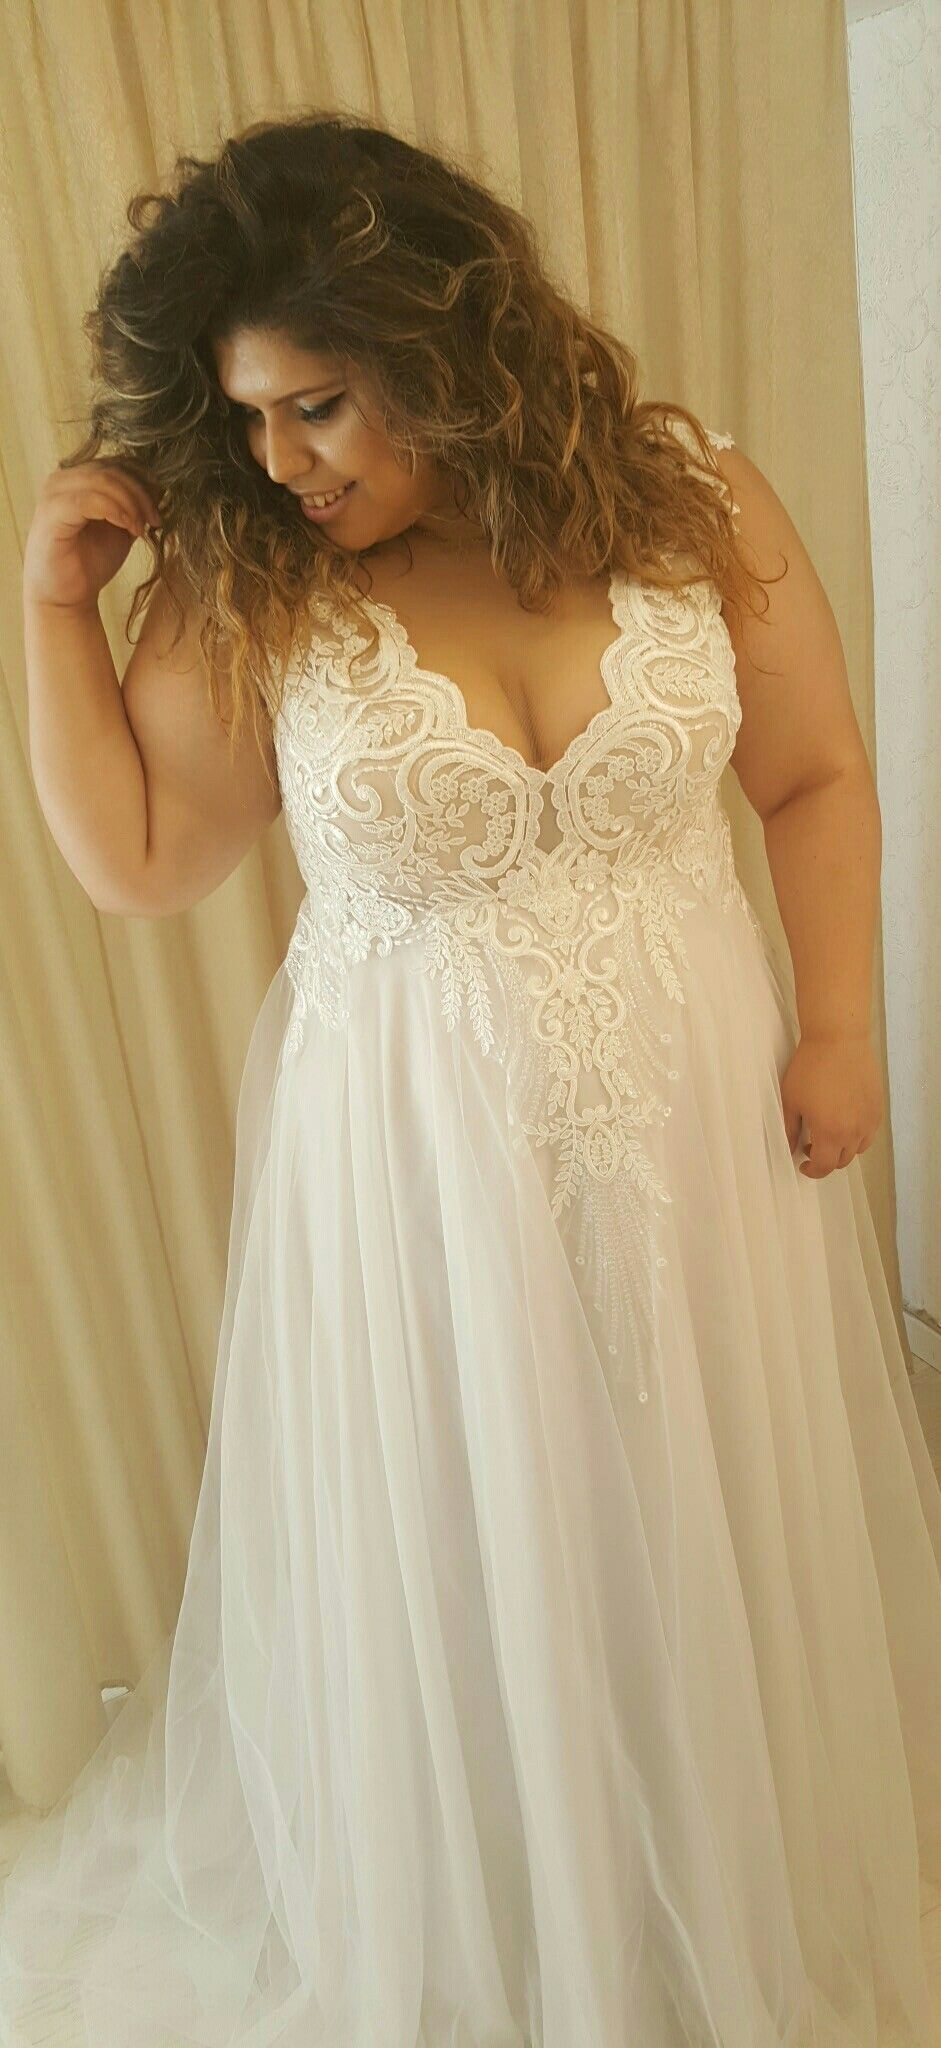 Plus size wedding gown with lace top and tulle skirt Tracie